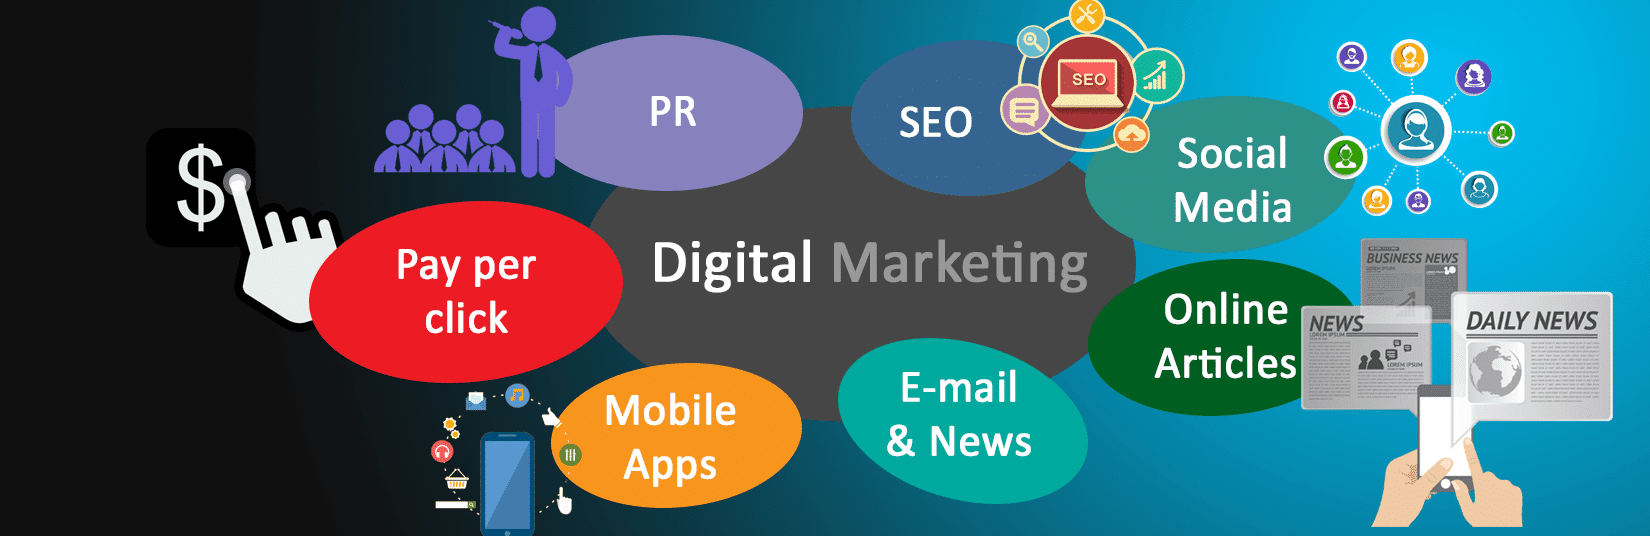 Kênh phân phối Pr vs Digital Marketing